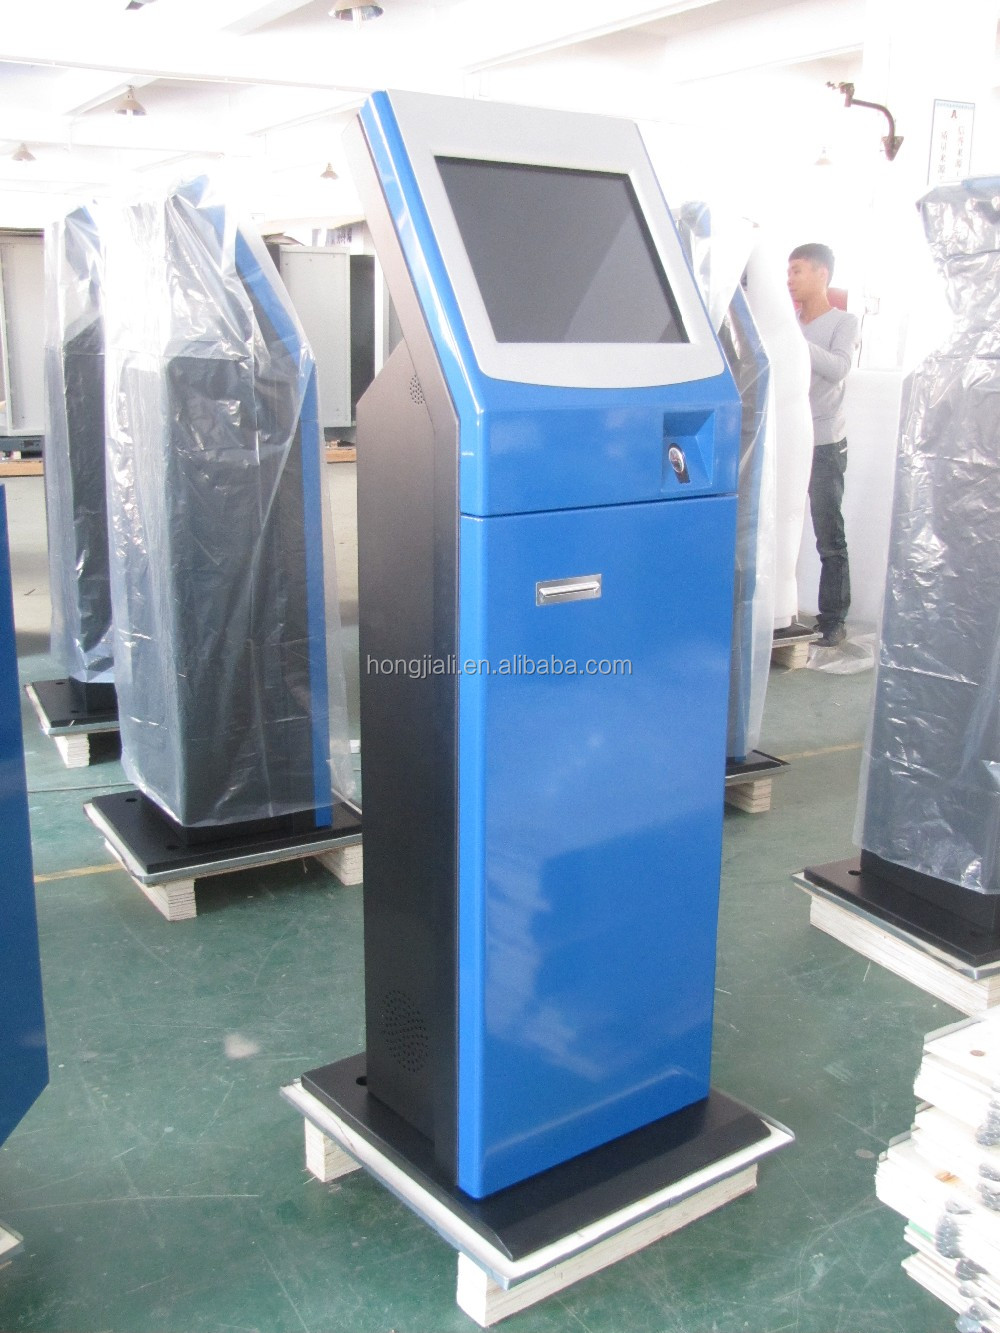 Automatic queue ticket dispenser machine and vending machine